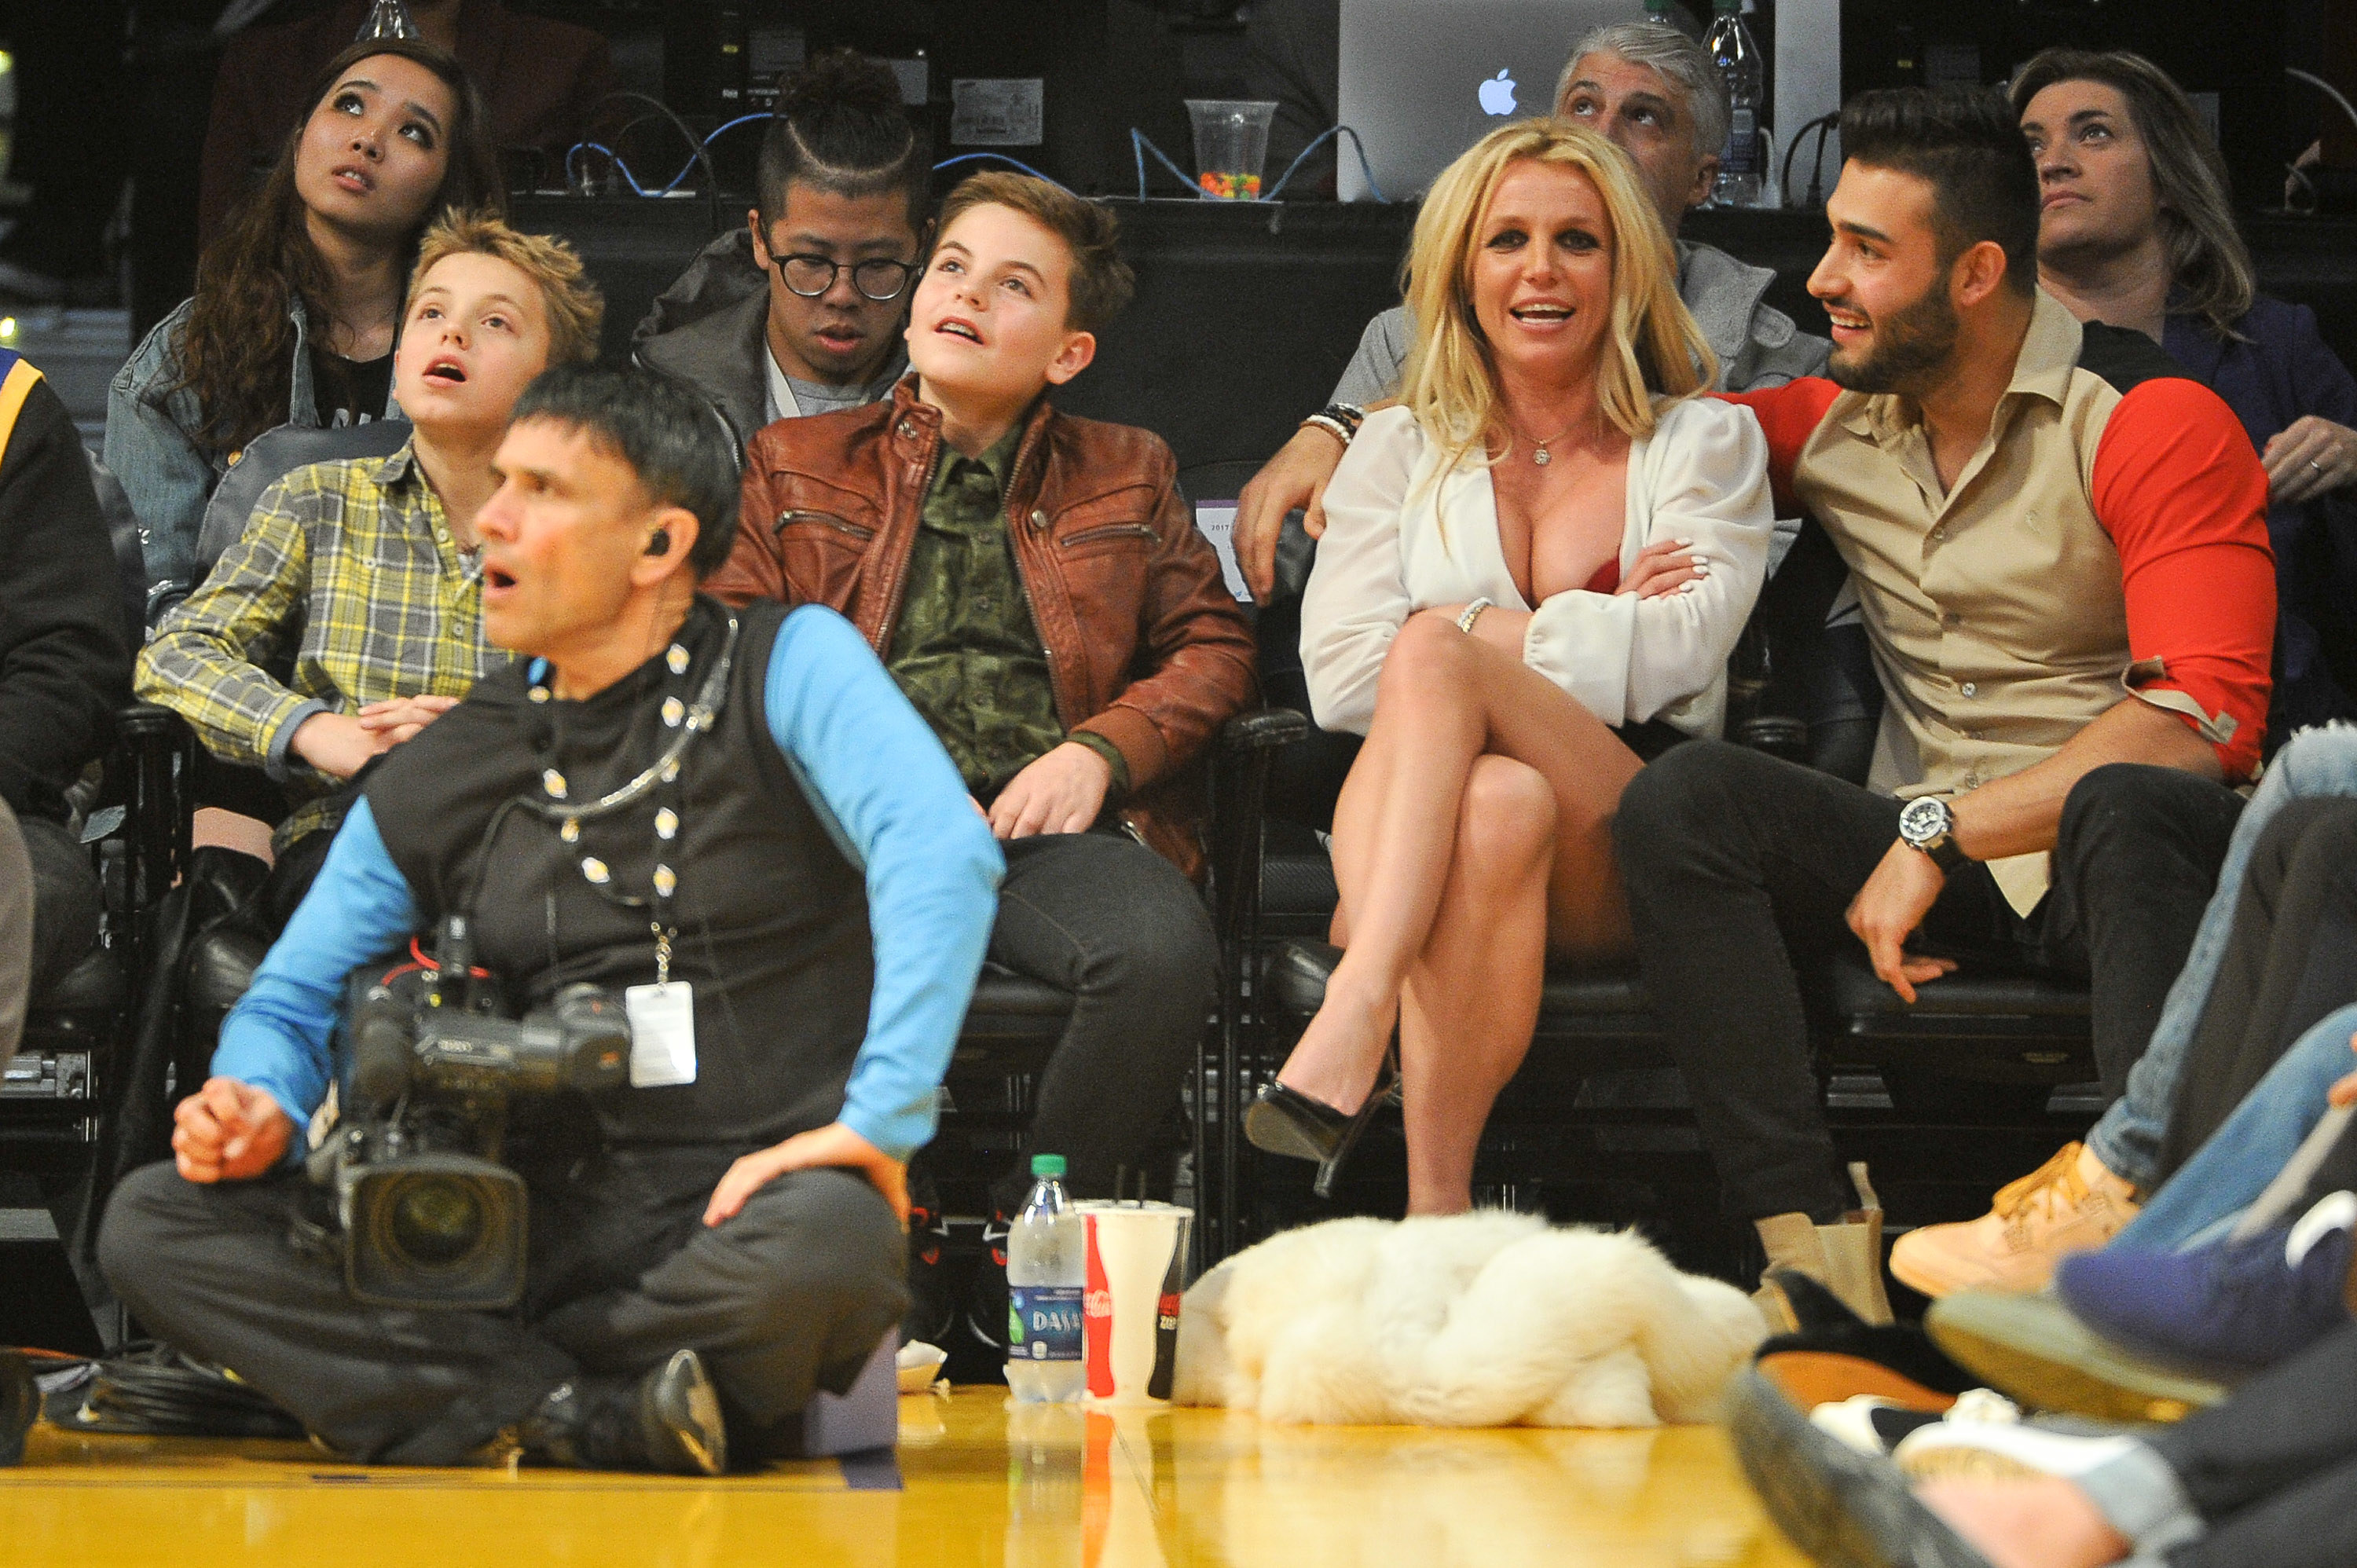 Sean Federline, Jayden James Federline, Britney Spears and Sam Asghari attend a basketball game between the Los Angeles Lakers and the Golden State Warriors at Staples Center on November 29, 2017 in Los Angeles, California